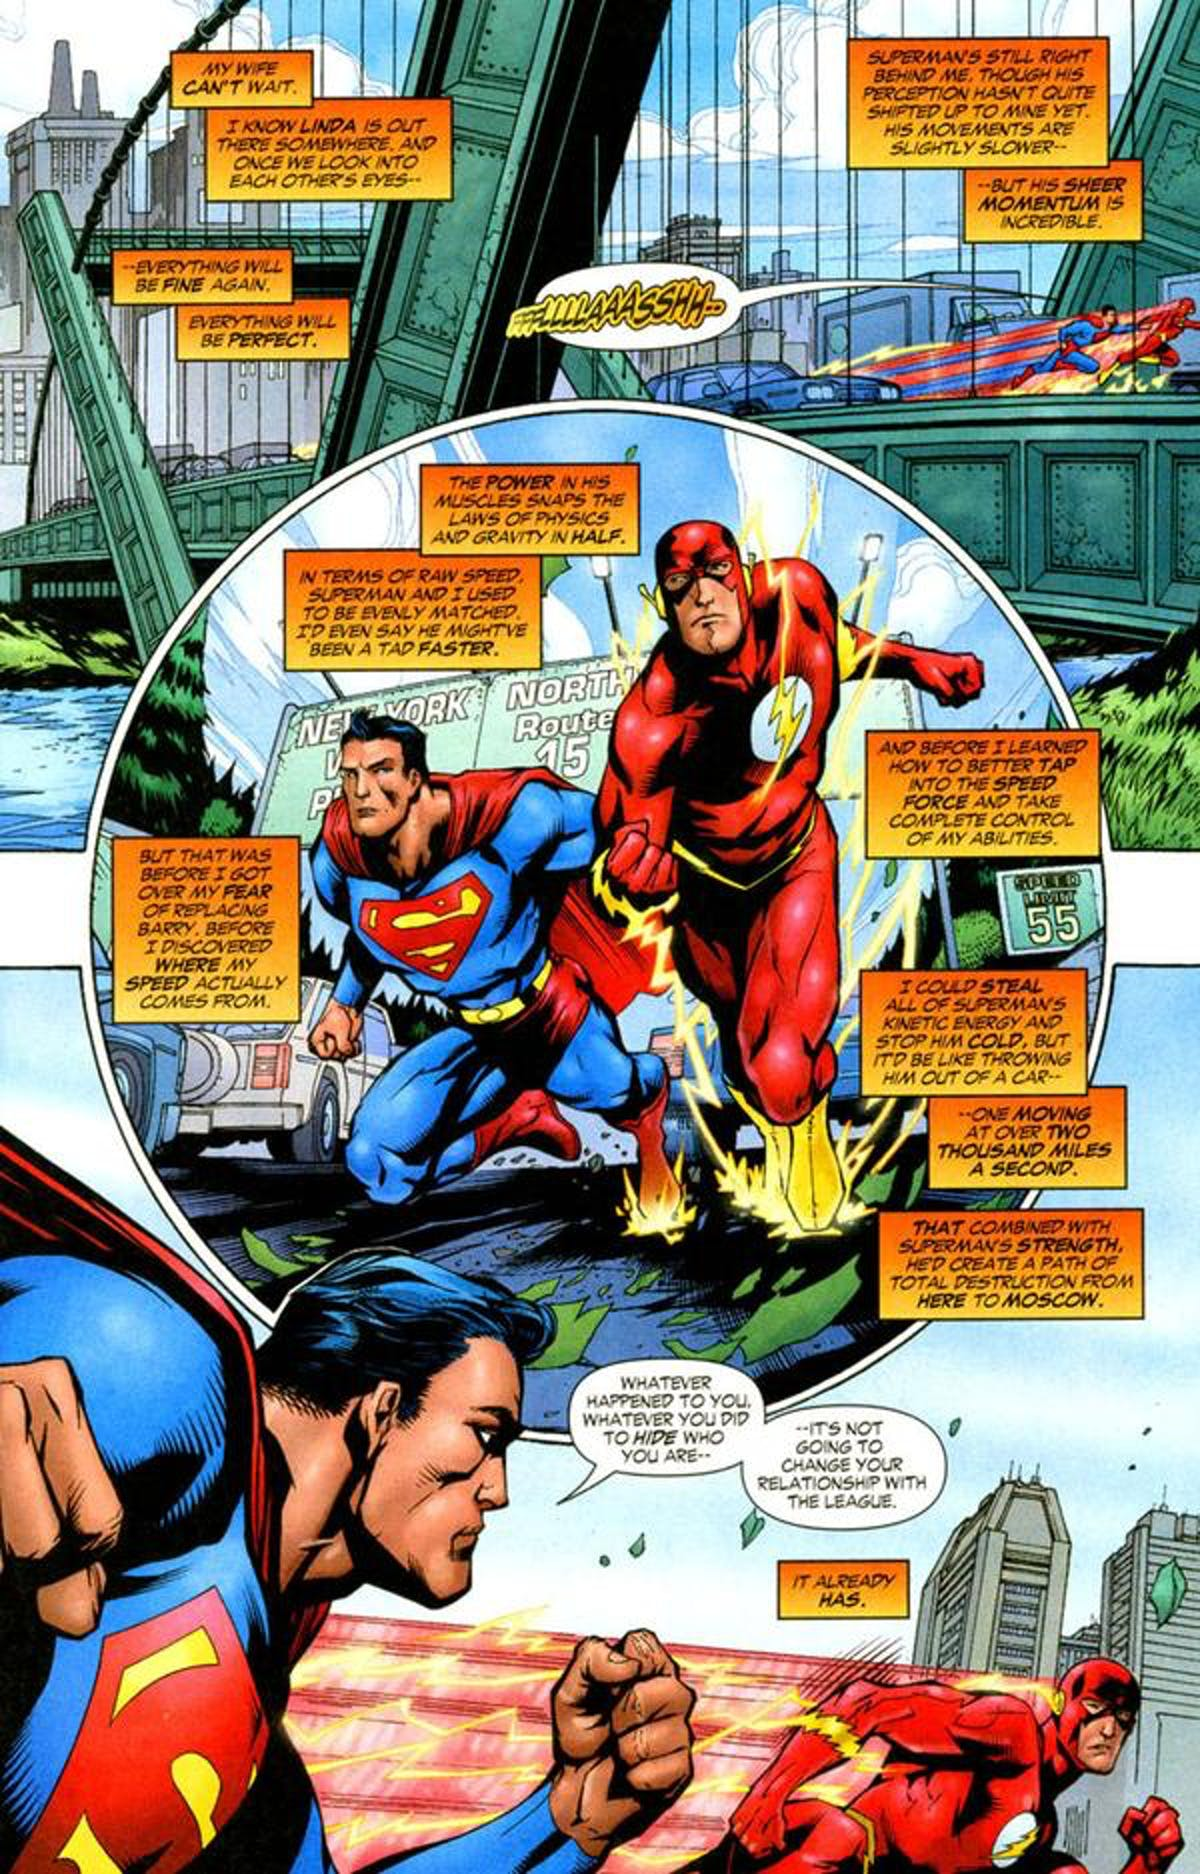 Superman Justice League the Flash